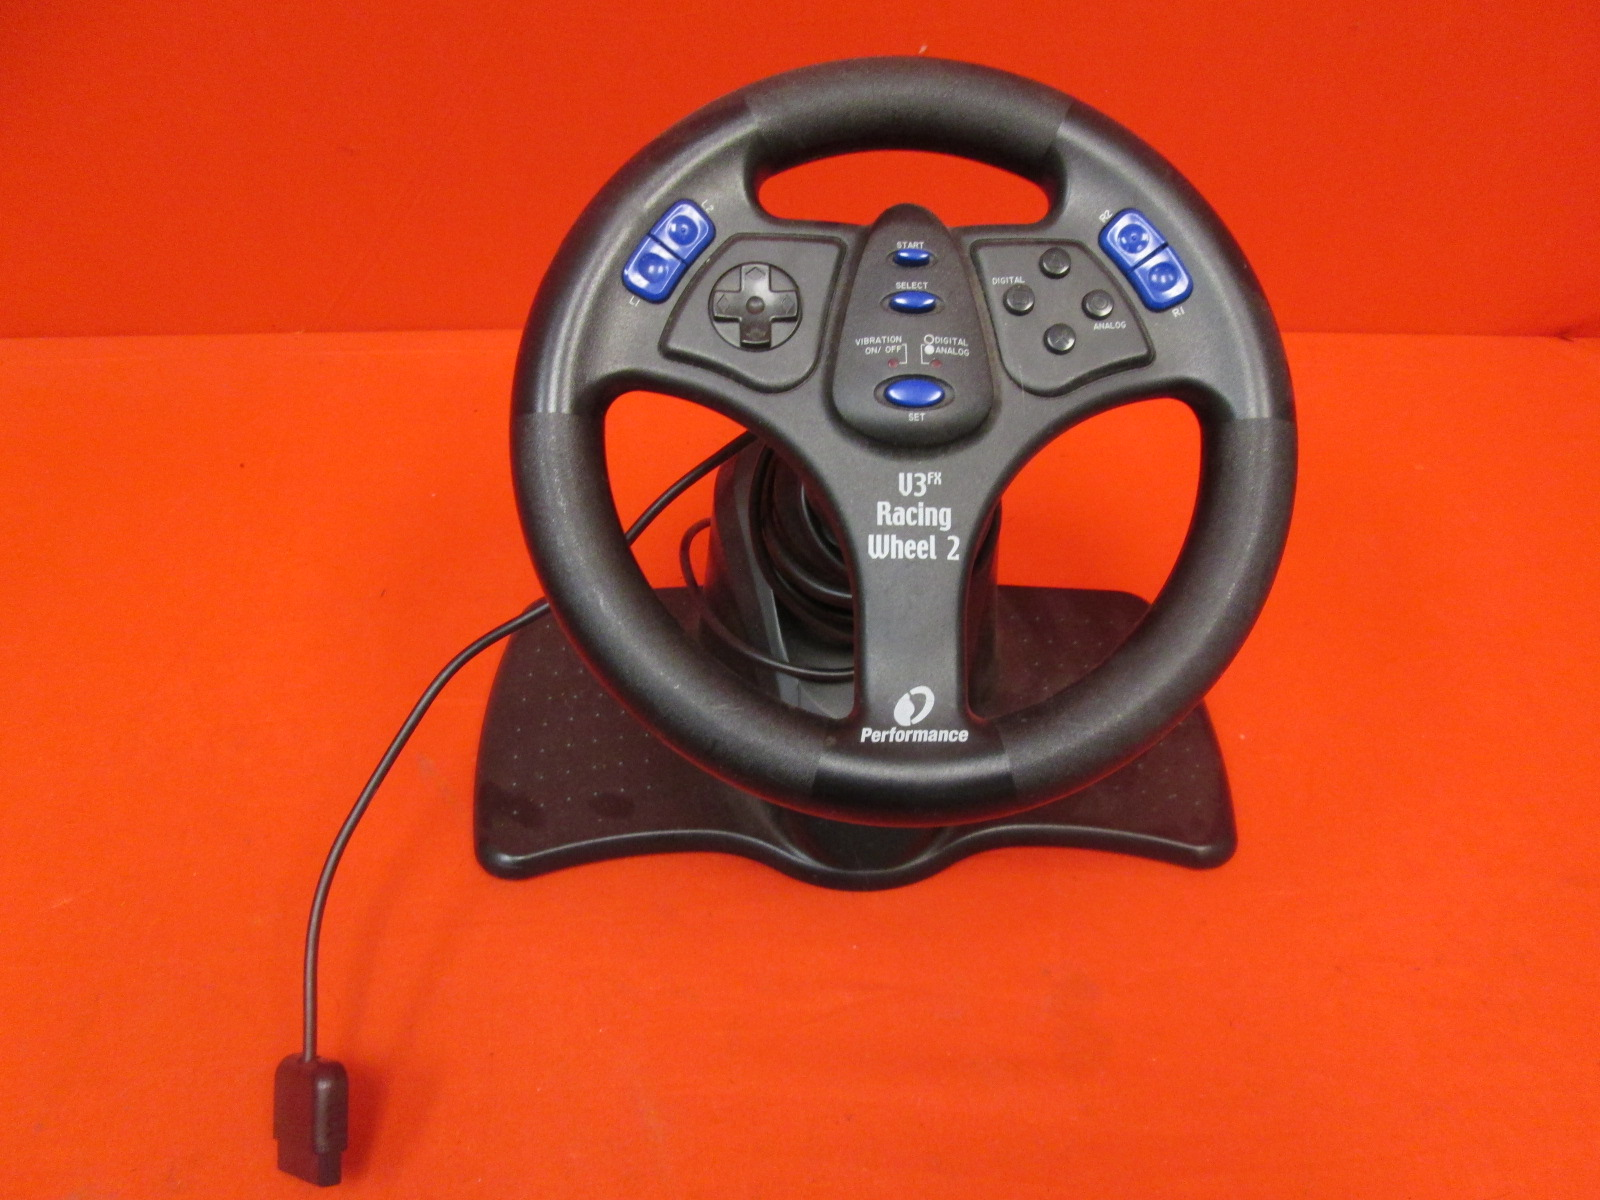 Performance V3FX Racing Wheel 2 For PlayStation 2 Incomplete